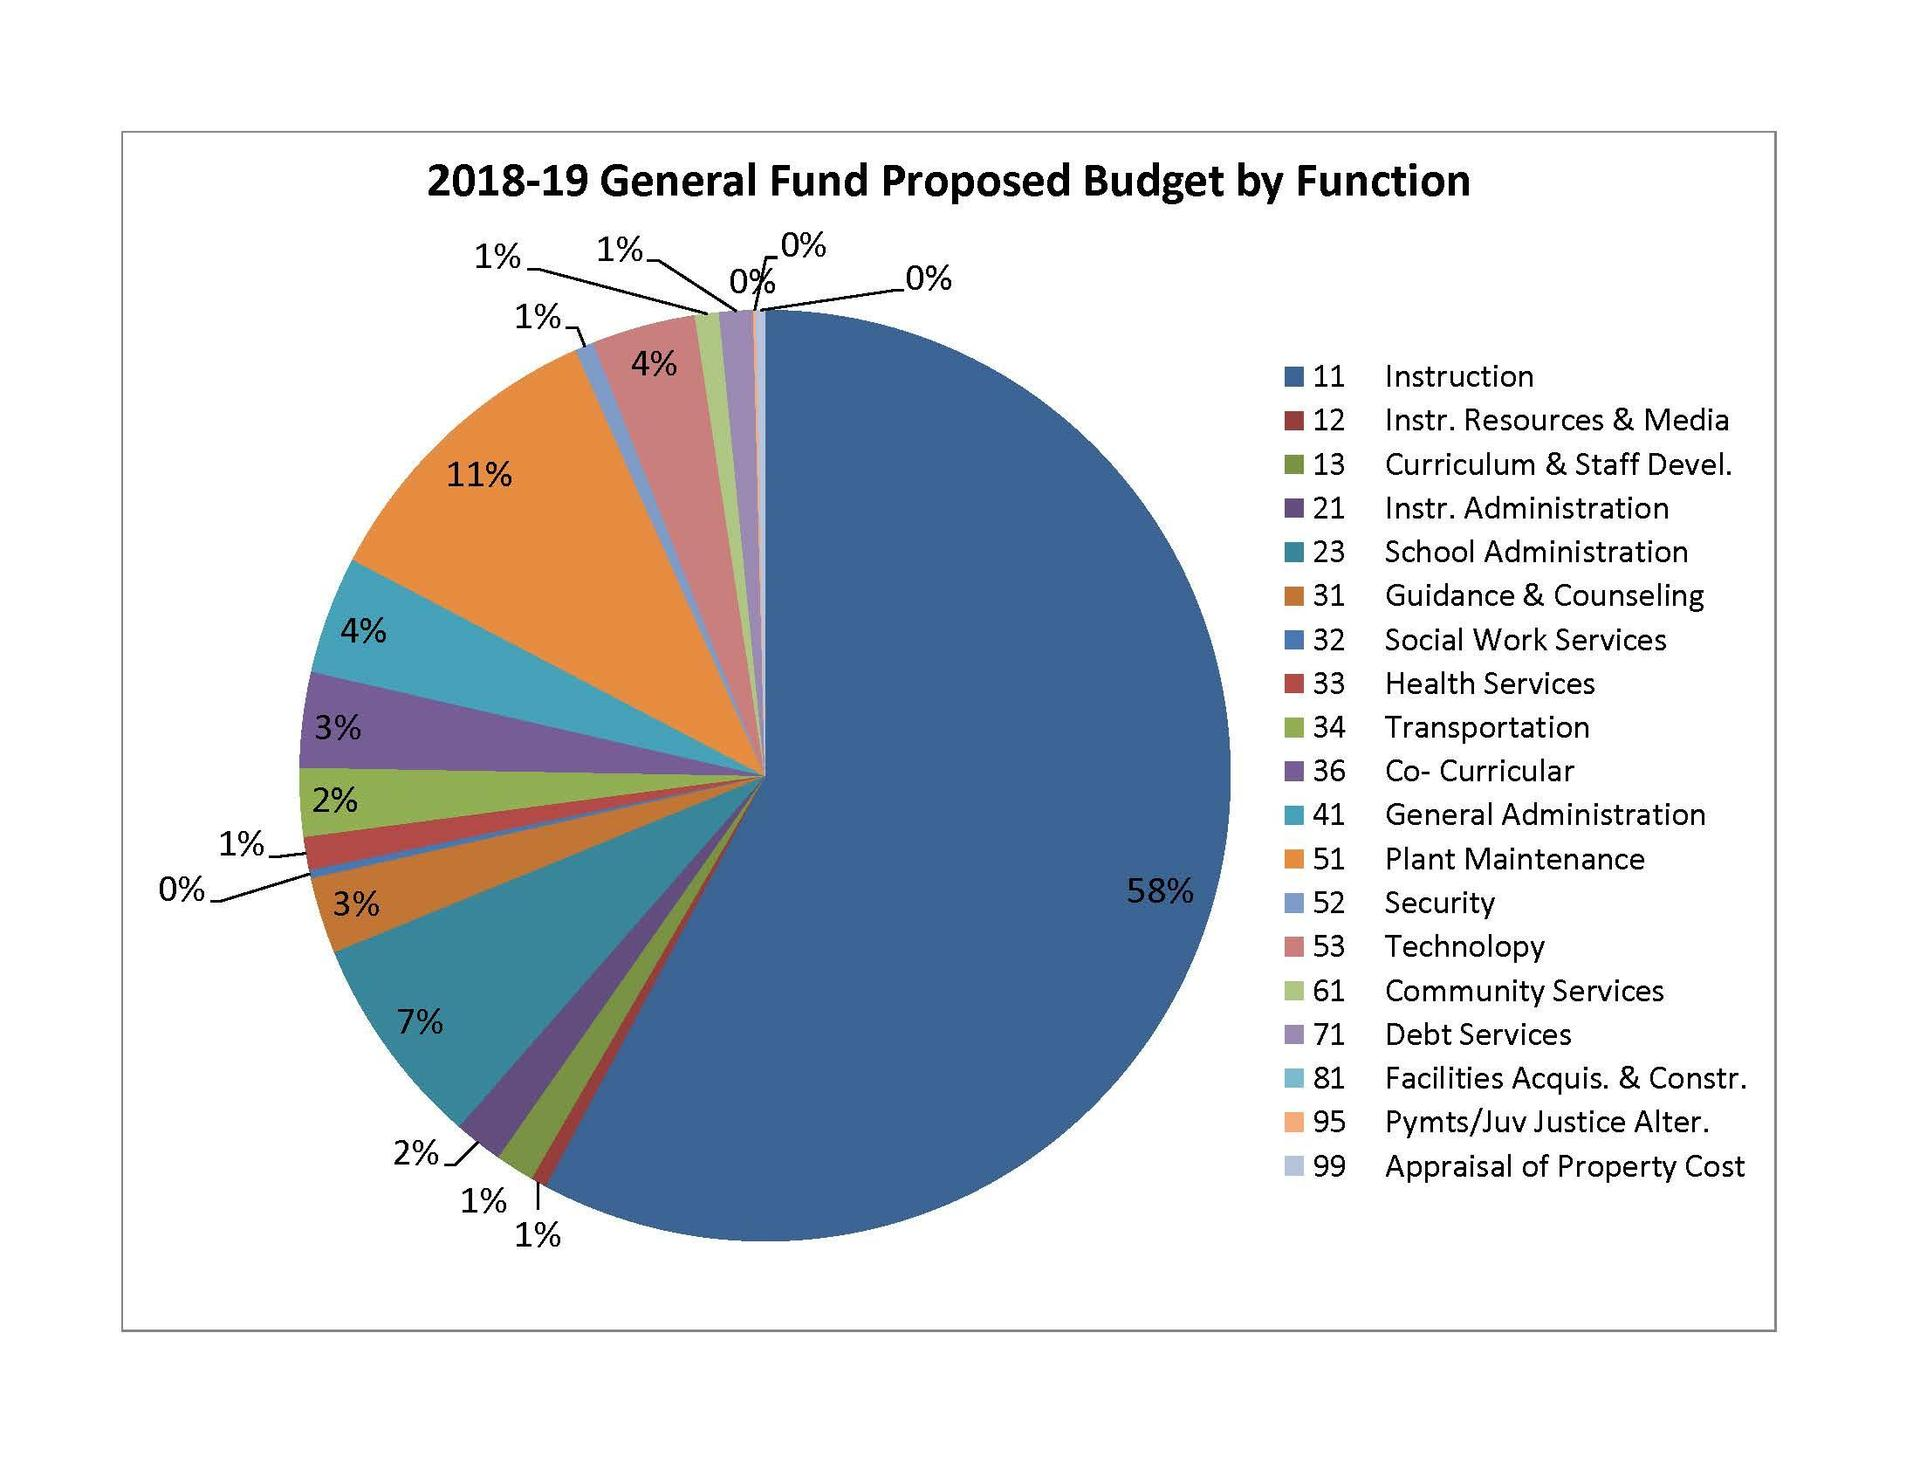 Budgeted Funds by Function